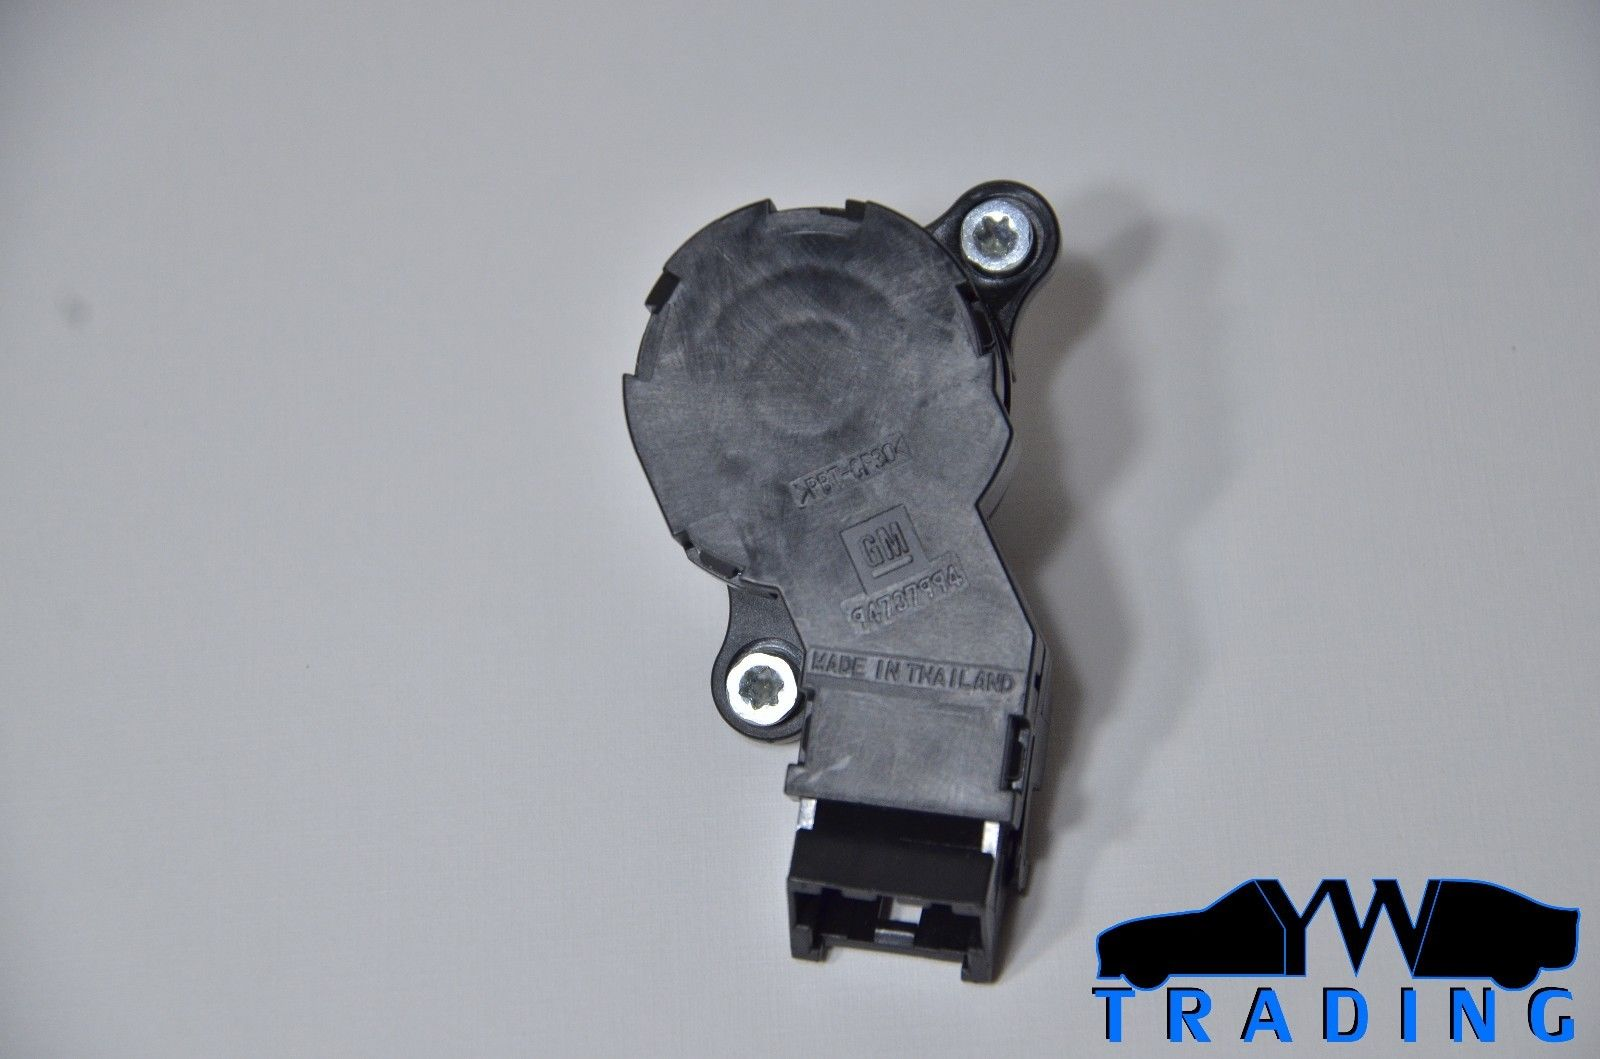 2015 - 2018 ACDELCO GM BUICK CHEVROLET GMC OEM IGNITION SWITCH - 94737994